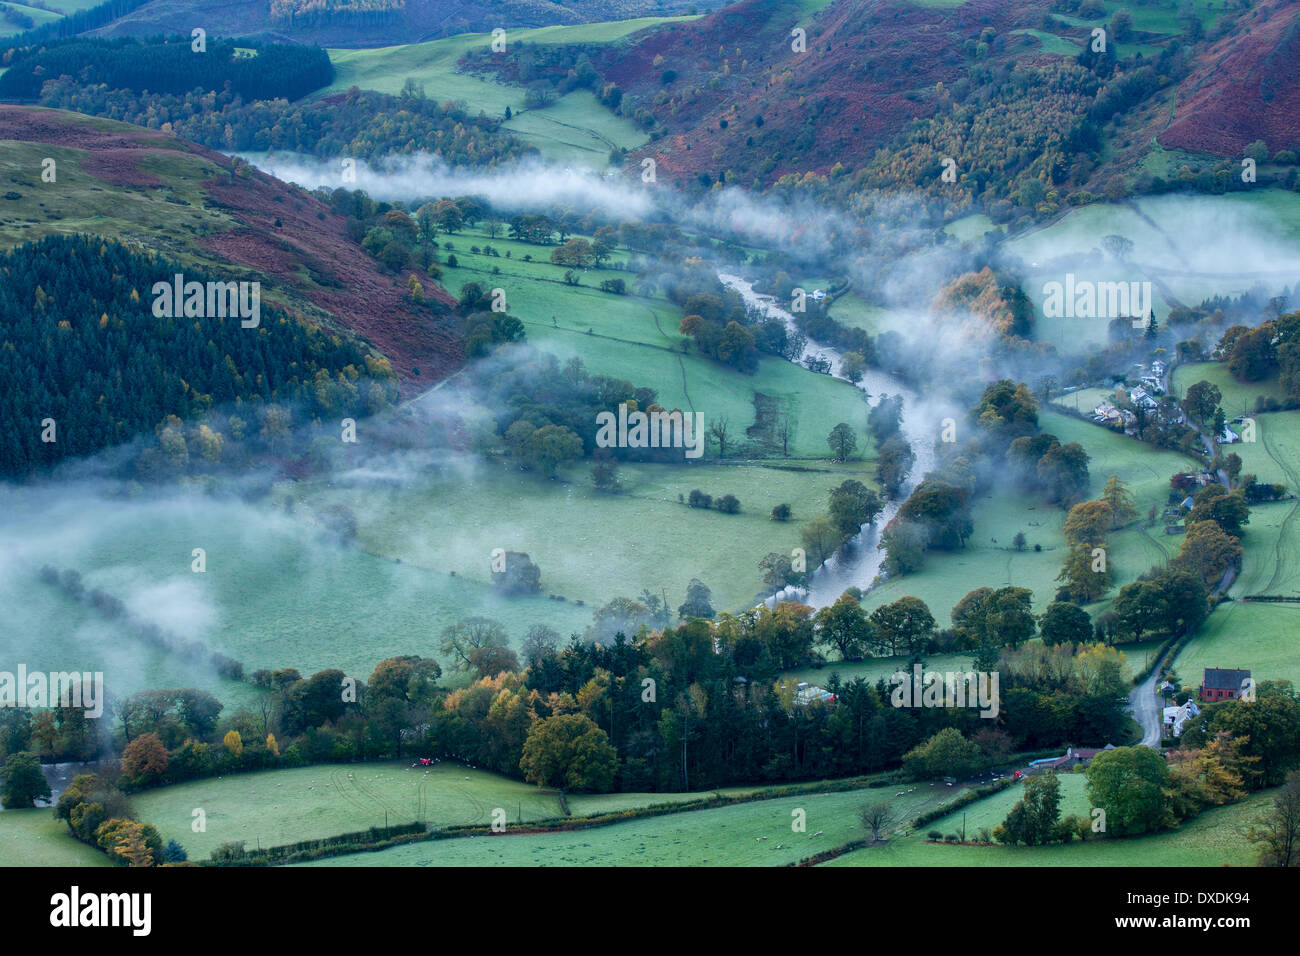 Autumn colours and mist in the Dee Valley (Dyffryn Dyfrdwy) near Llangollen, Denbighshire, Wales - Stock Image